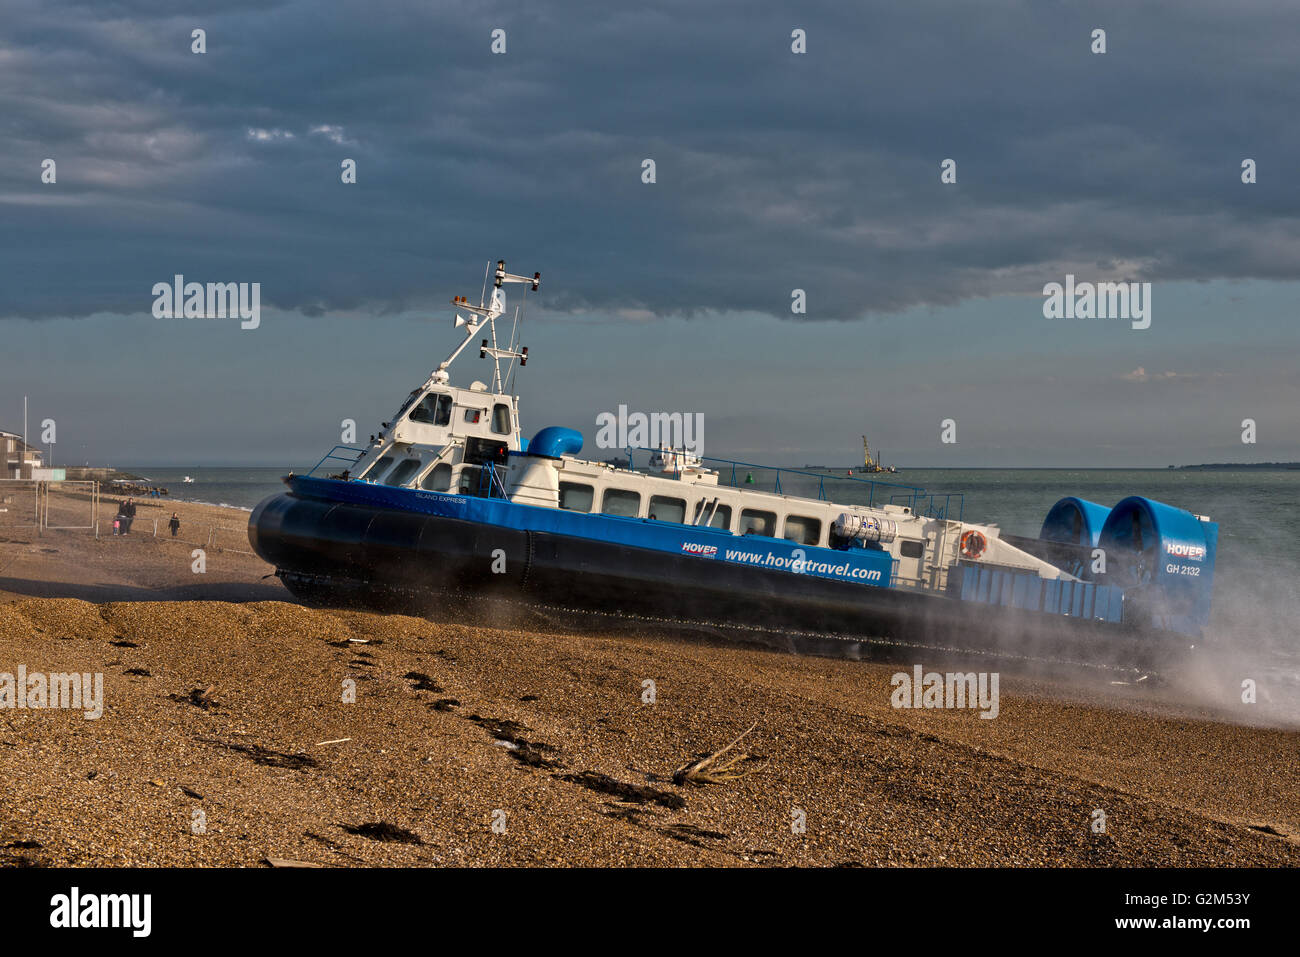 Hovercraft, AP1-88 – Island Express owned Hovertravel arriving at Southsea, Portsmouth, Hampshire, UK Stock Photo